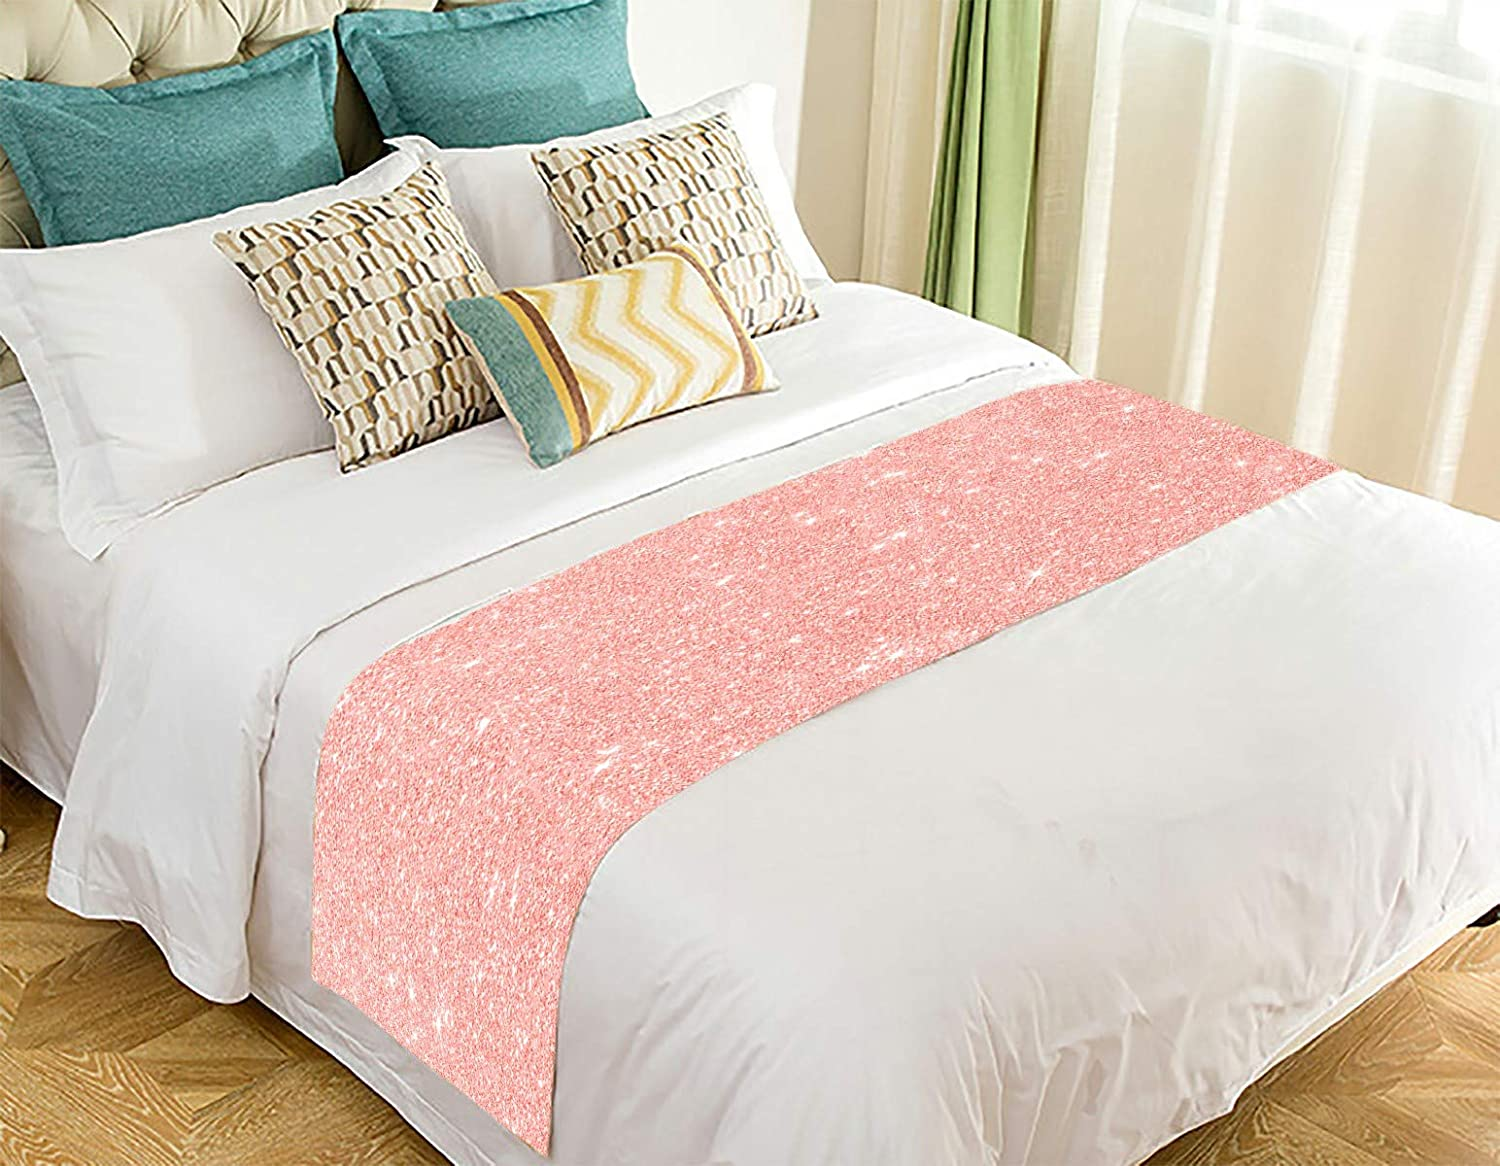 ECZJNT Rose Gold Glitter Texture Pink red Sparkling Shiny Bed Runner Bed Scarf Bed Decor 20x95 inch